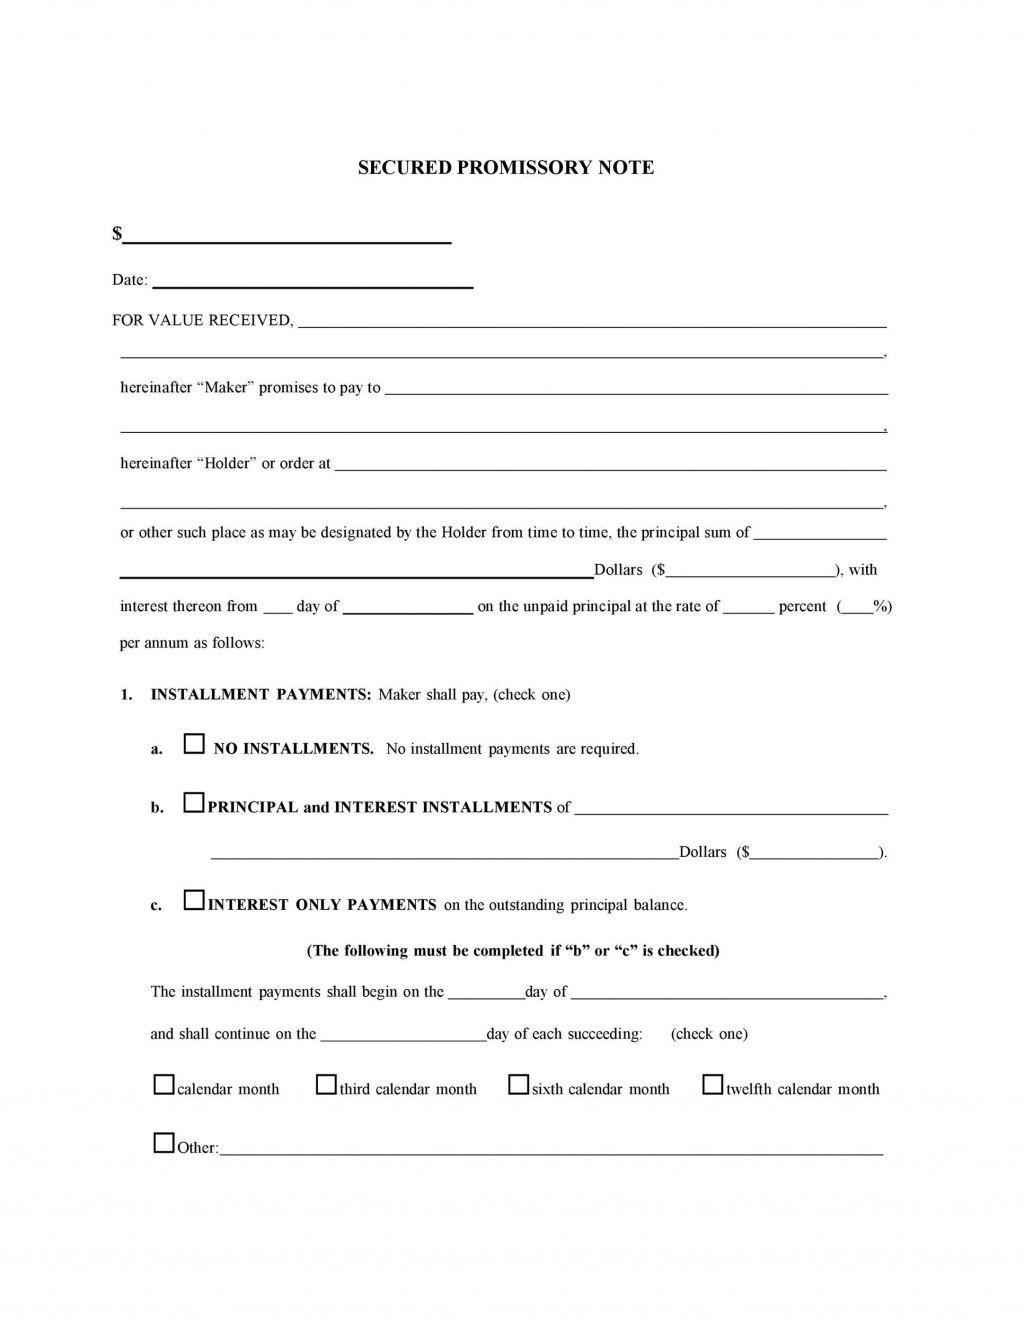 008 Fascinating Template For Promissory Note Example  Personal Loan Free UkLarge